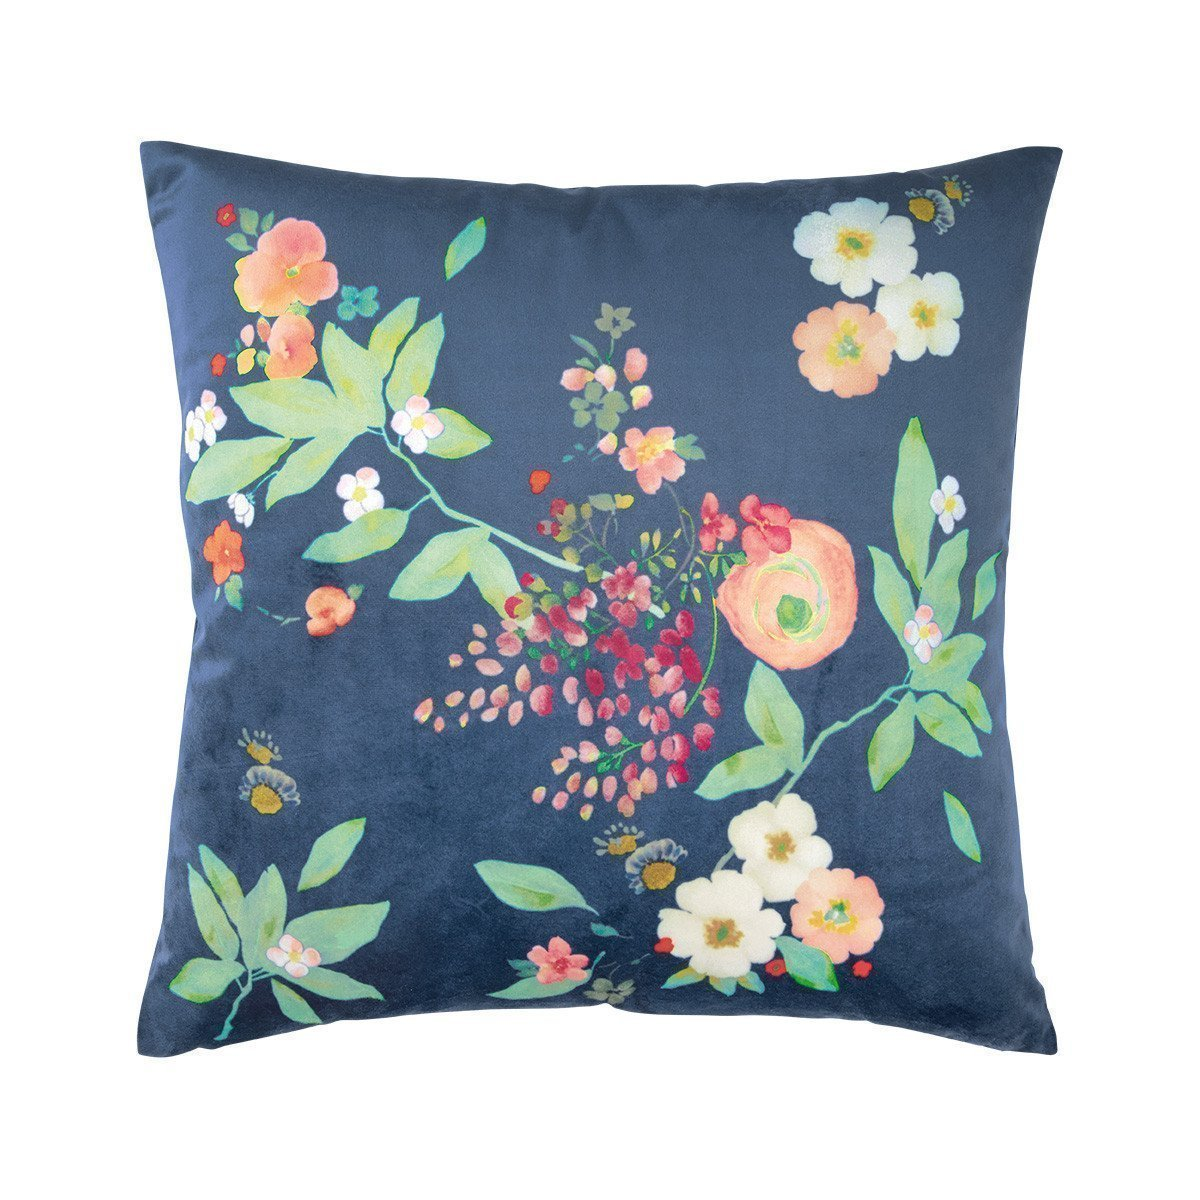 Cushion Cover Boudoir